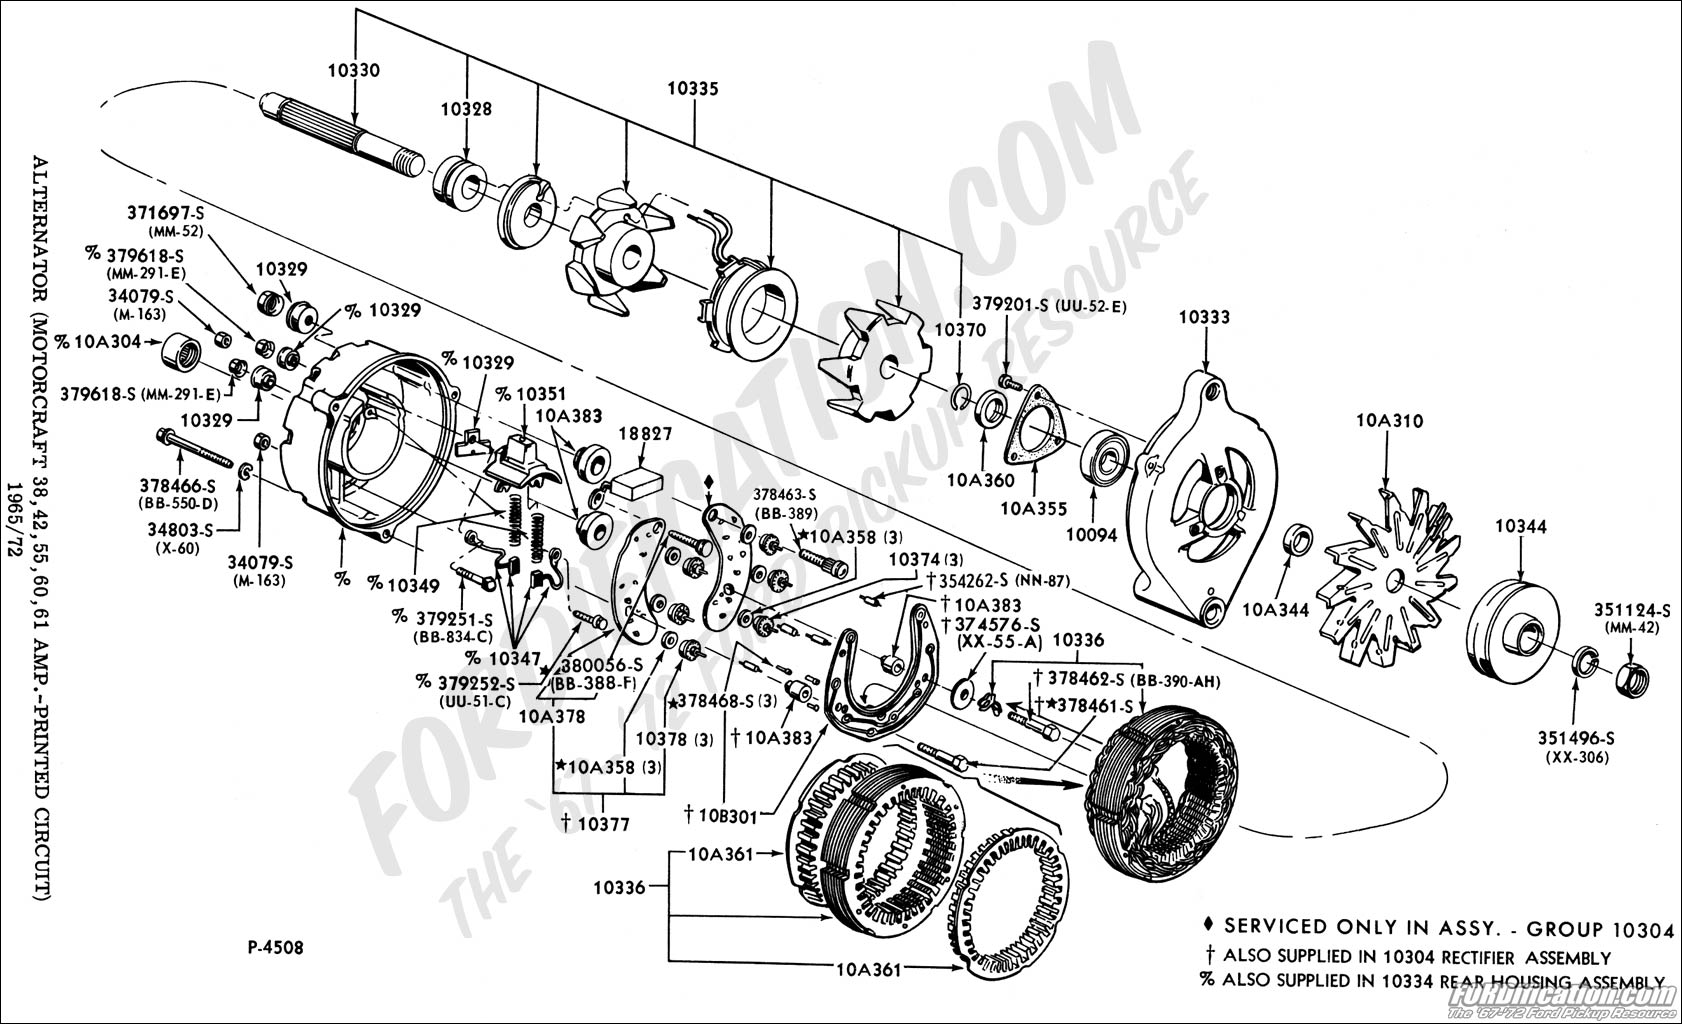 Infiniti Fx35 Headlight Wiring Diagram Free Download Wiring Diagram